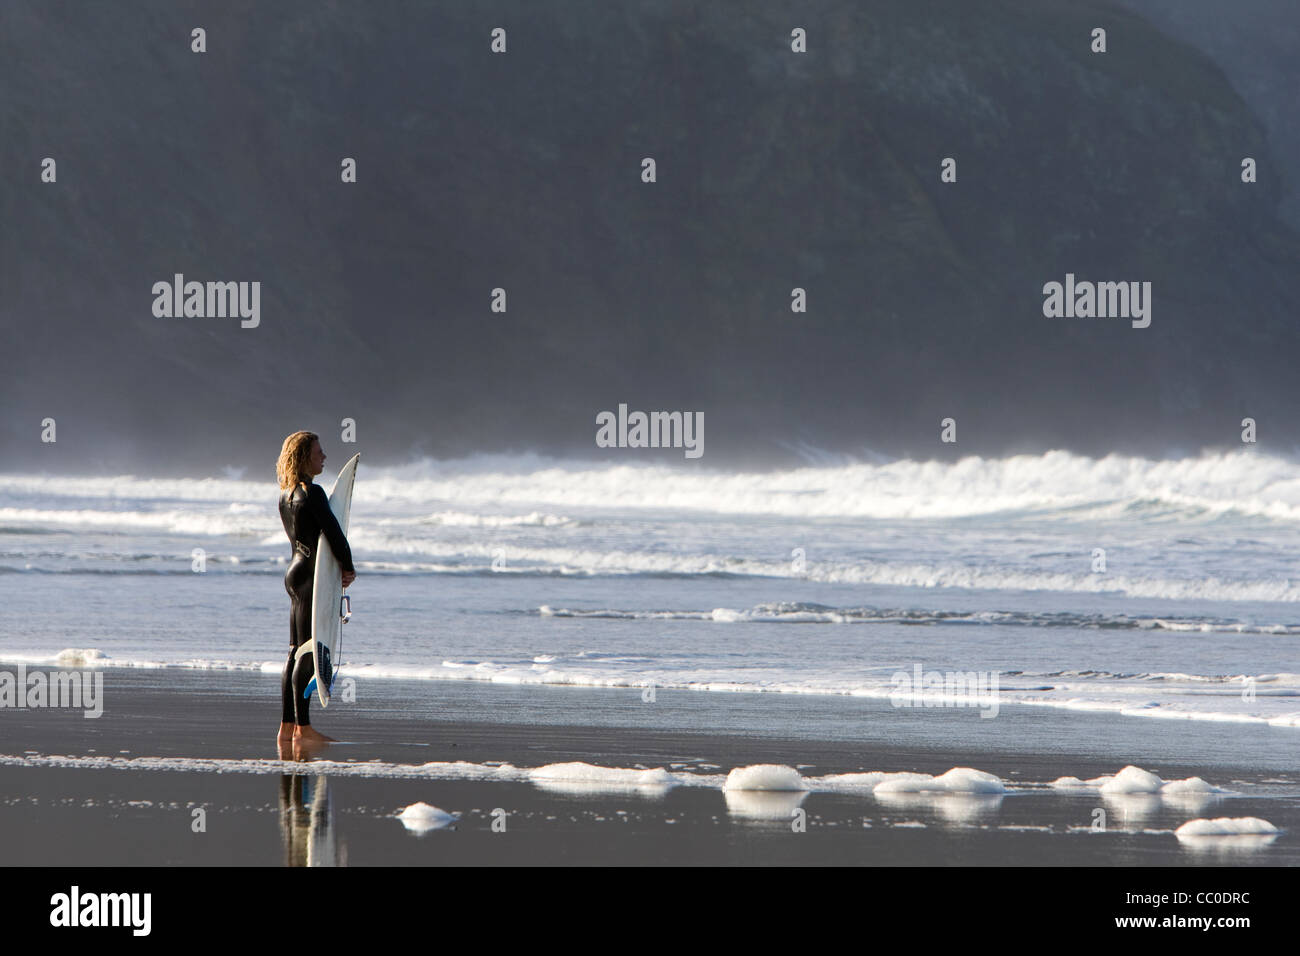 A surfer looks at the surf conditions at Porthtowan beach, Cornwall. - Stock Image